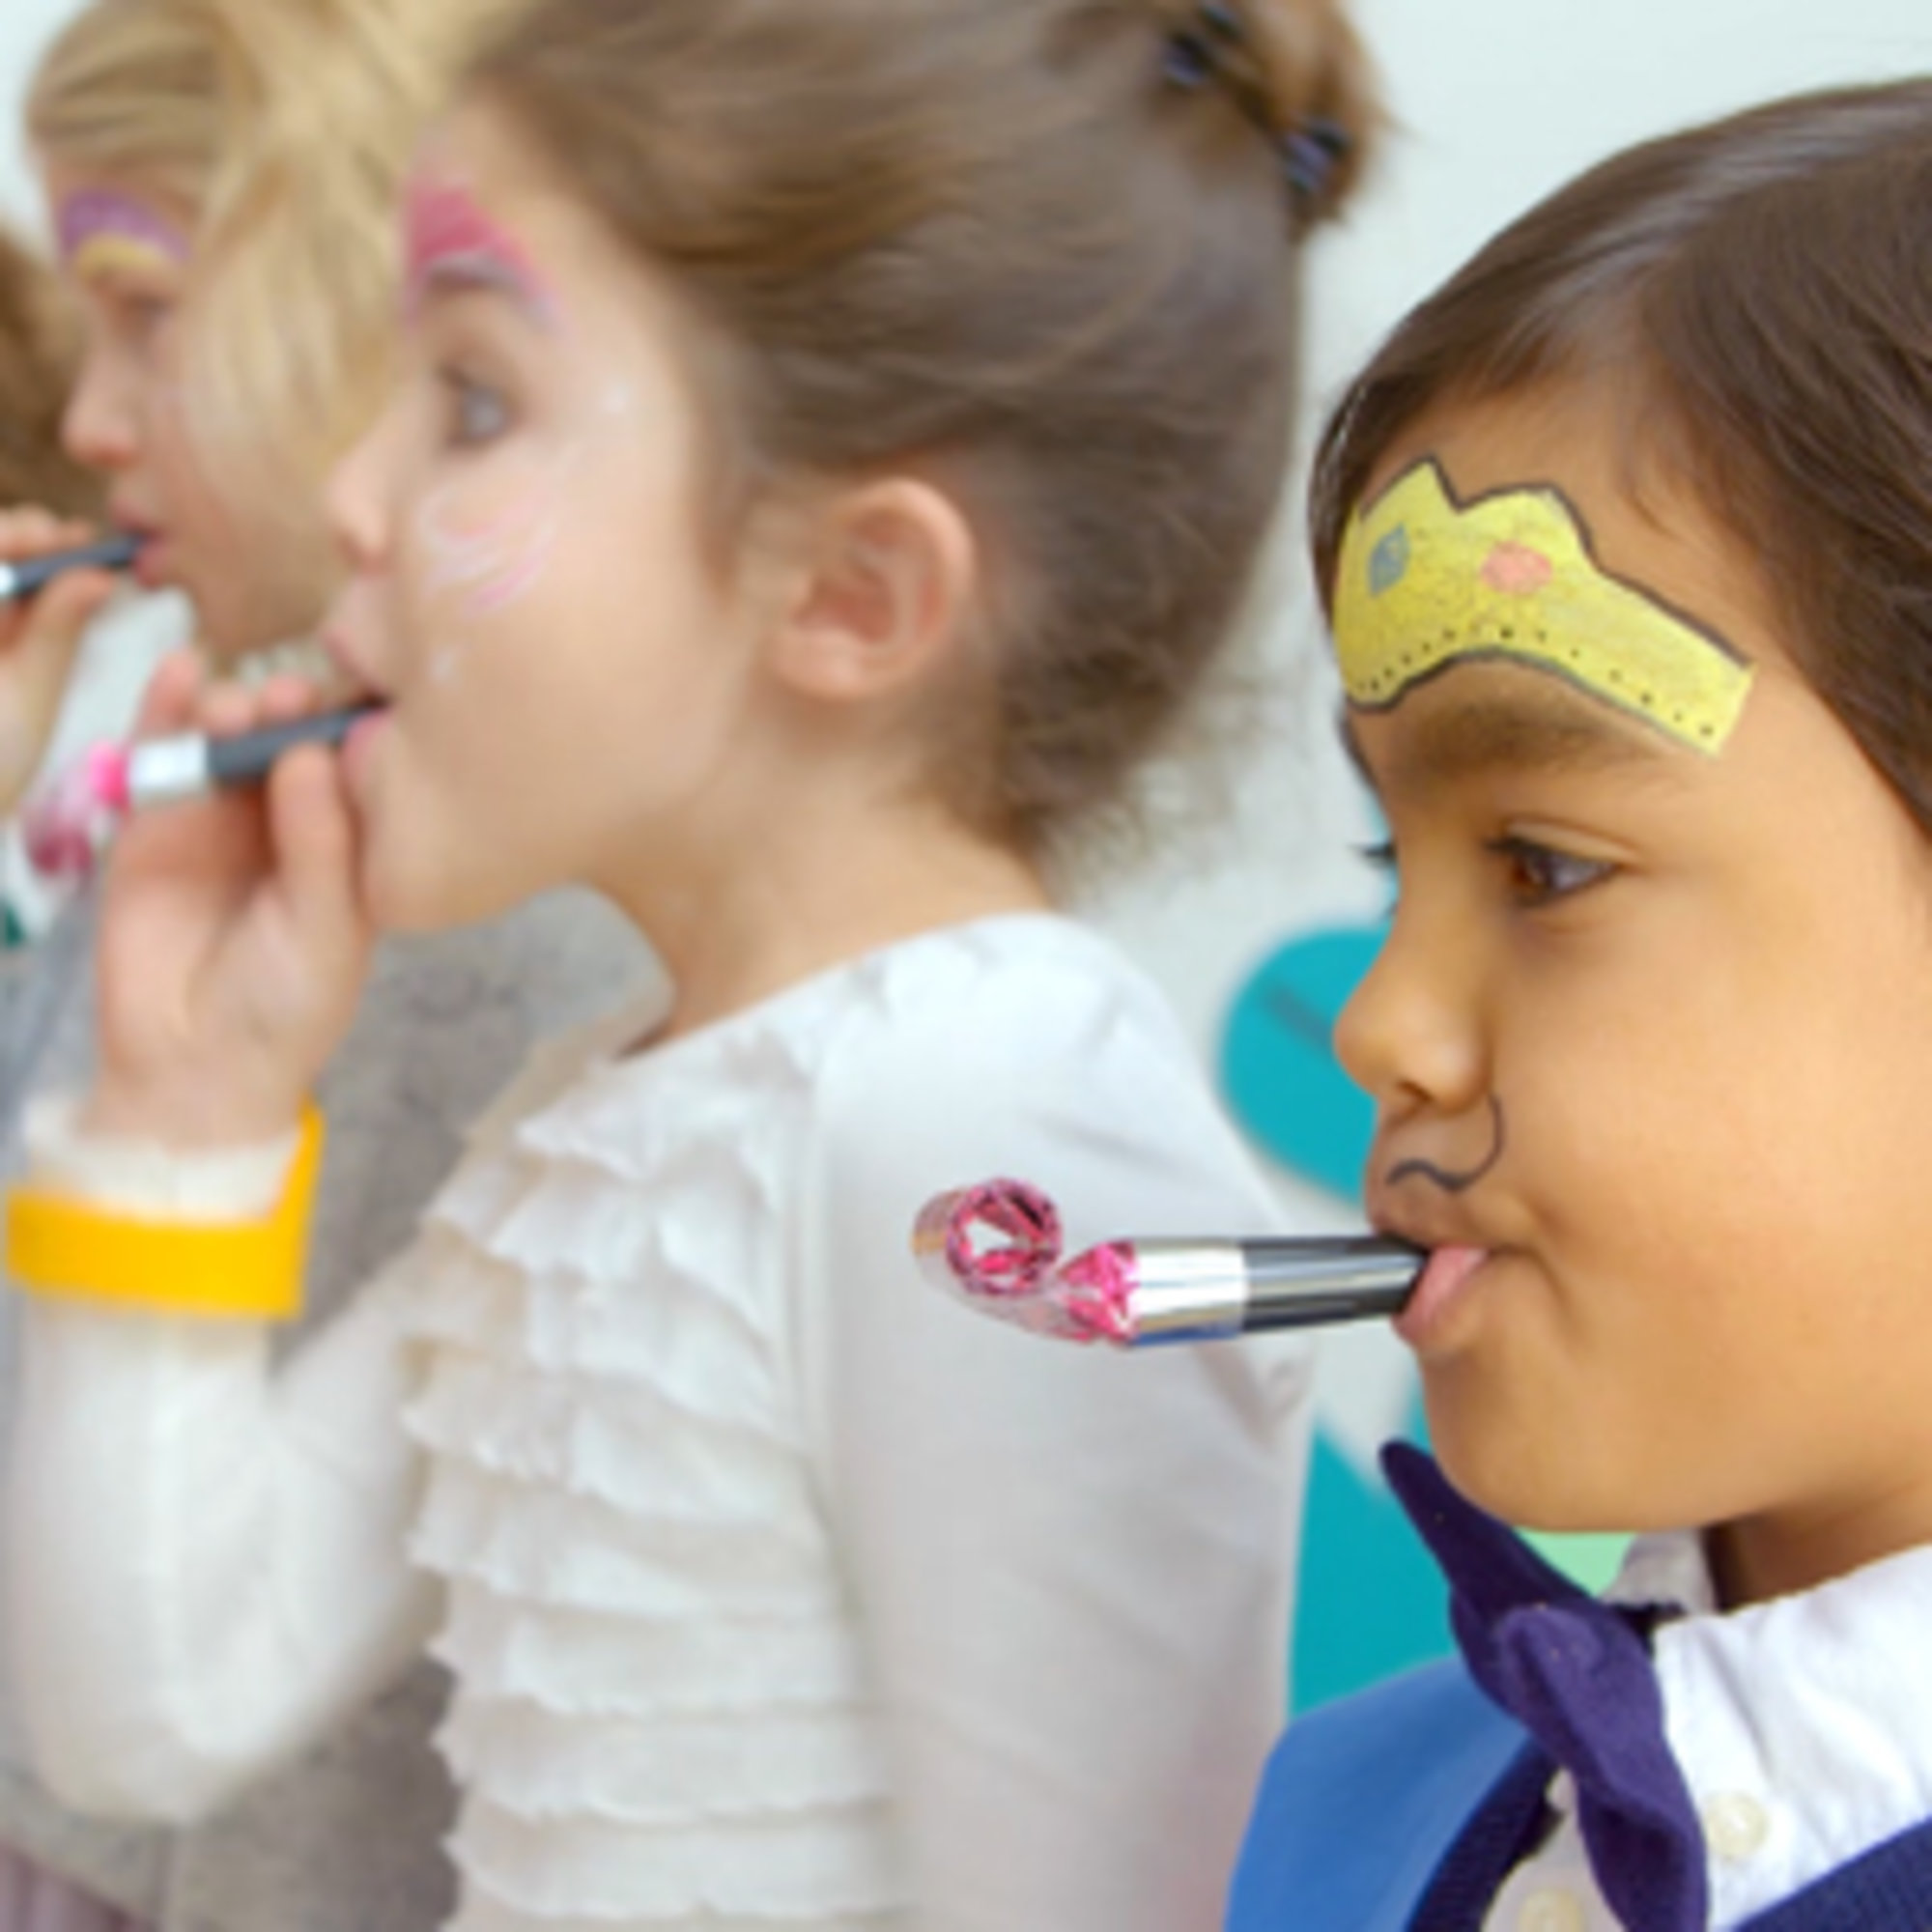 Kids with a party blowers